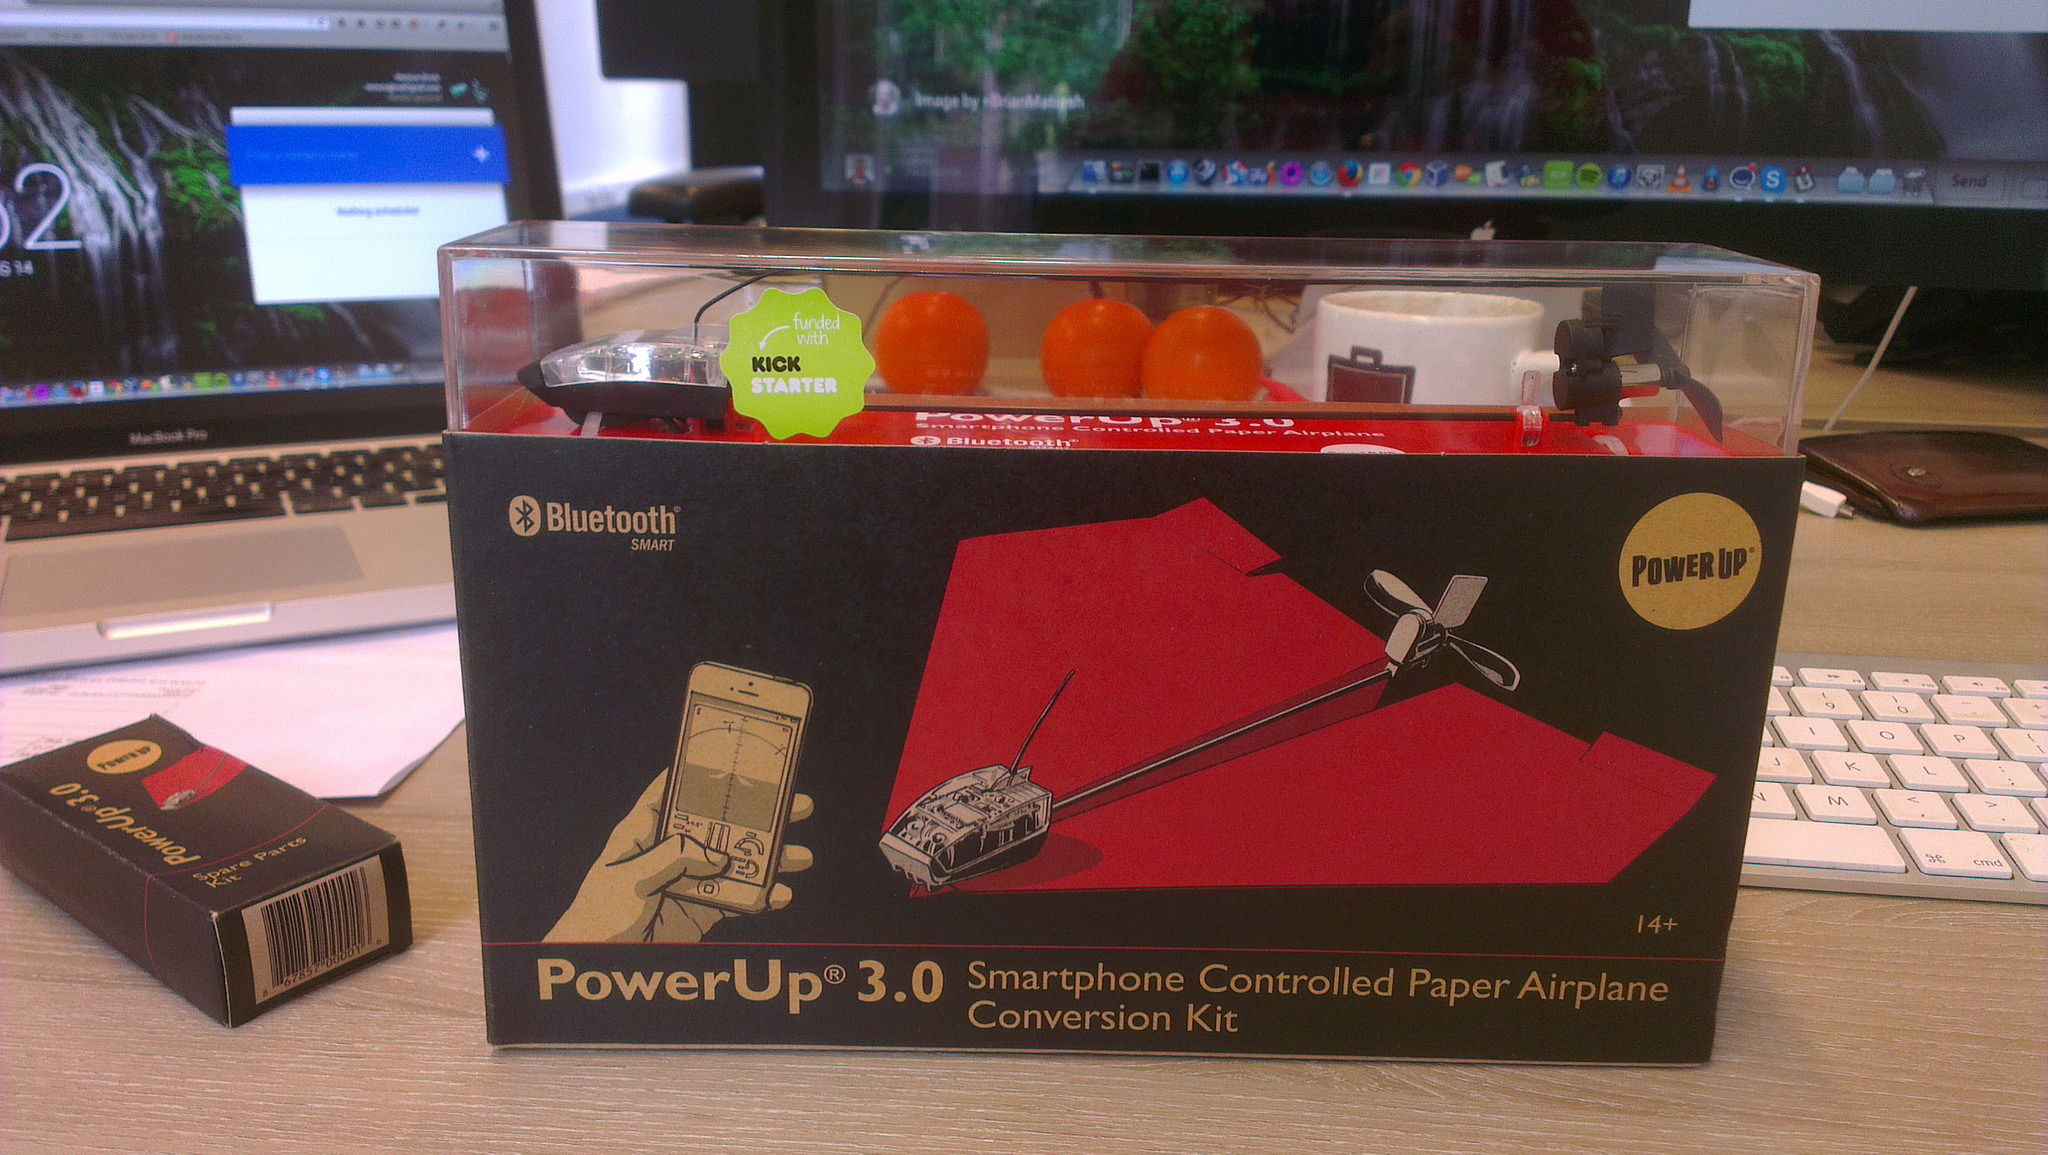 Awesome, my PowerUp smartphone controlled paper airplane conversion kit has arrived!, Remco Brink August 14, 2014